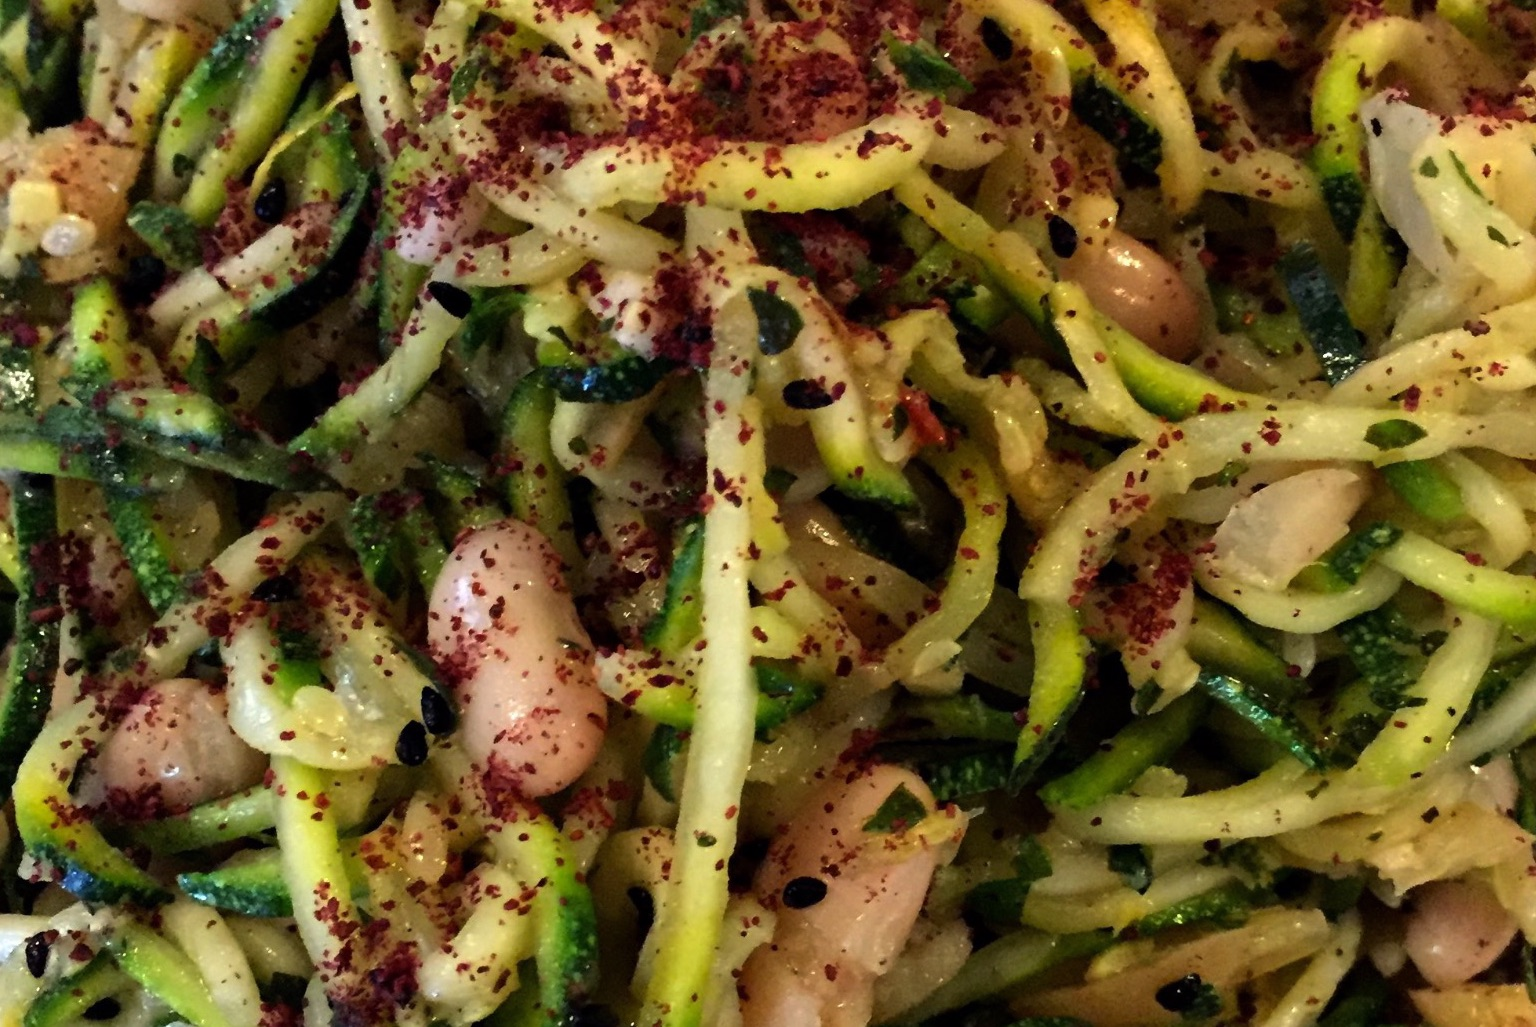 Courgetti with preserved lemon and butterbeans